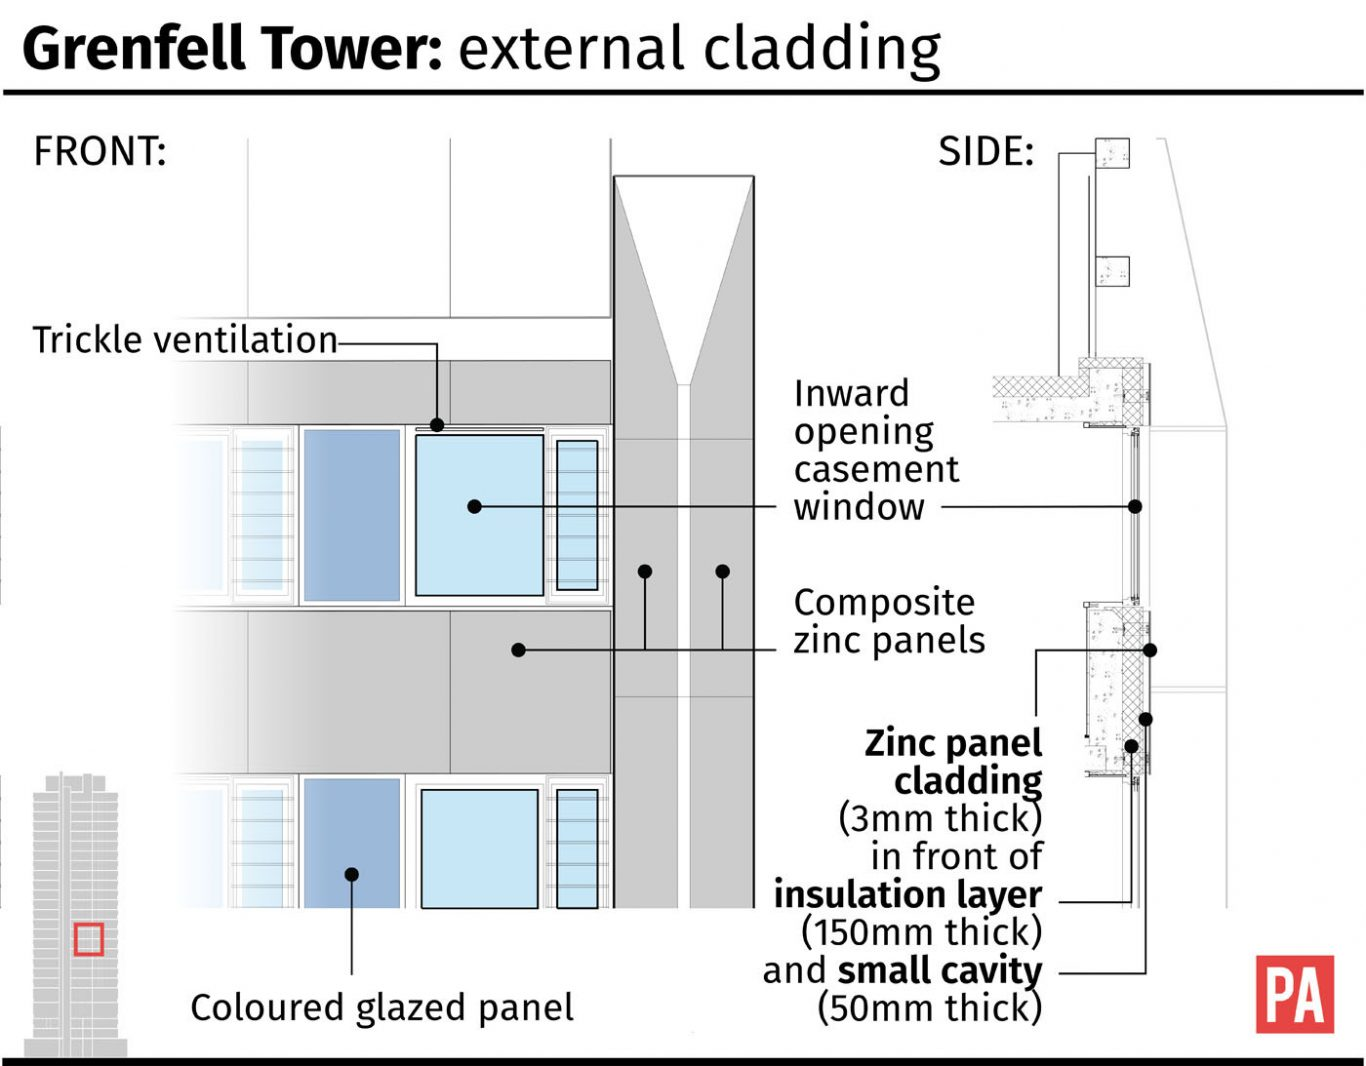 Grenfell Tower external cladding graphic